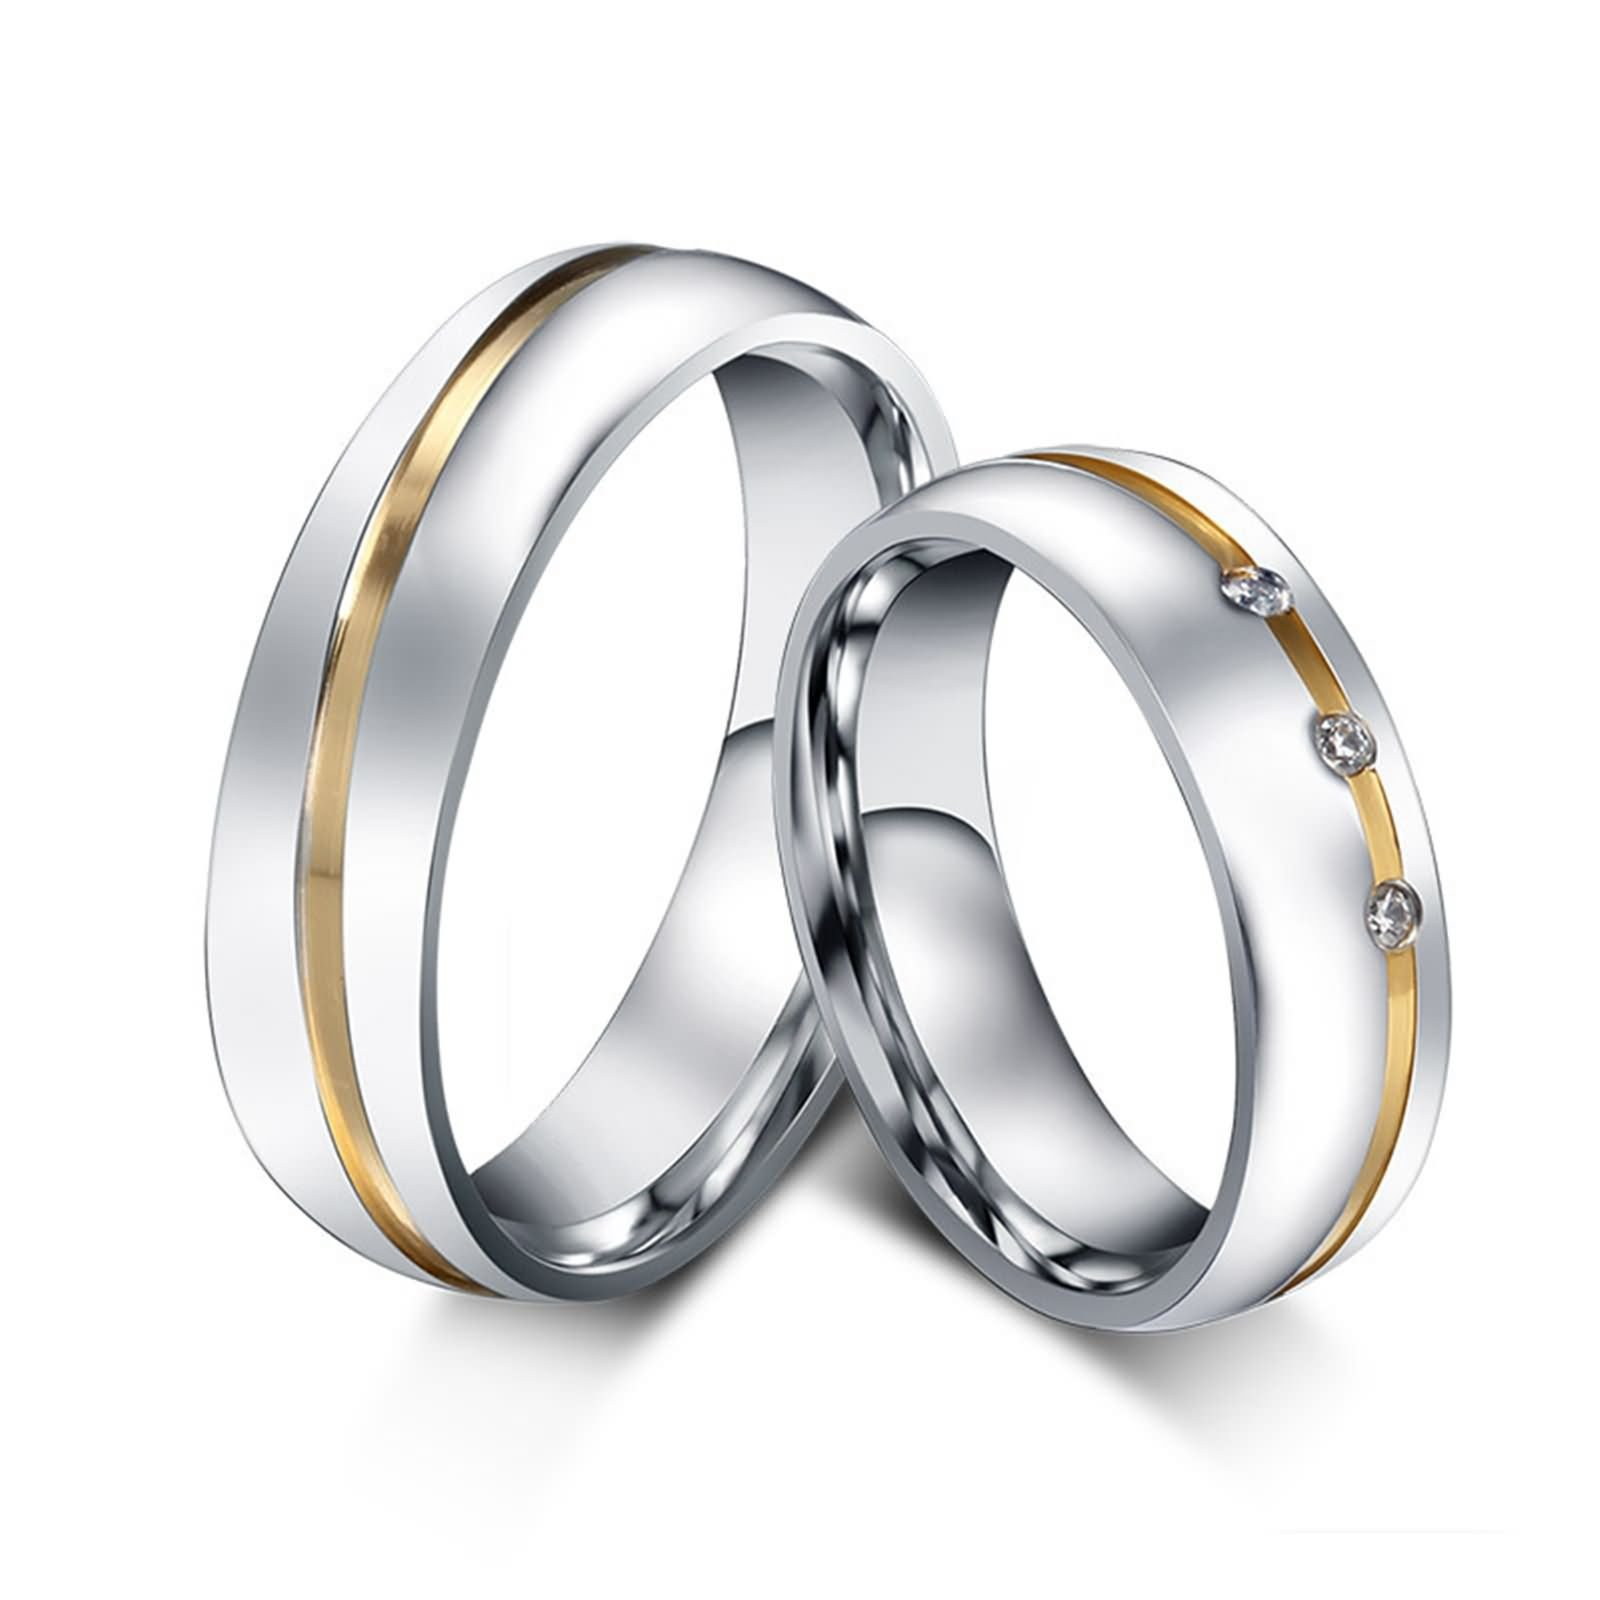 Beydodo Titanium Rings Set for Women Stainless Steel Ring Bands Round CZ Women Size 7 & Men Size 12 by Beydodo (Image #1)